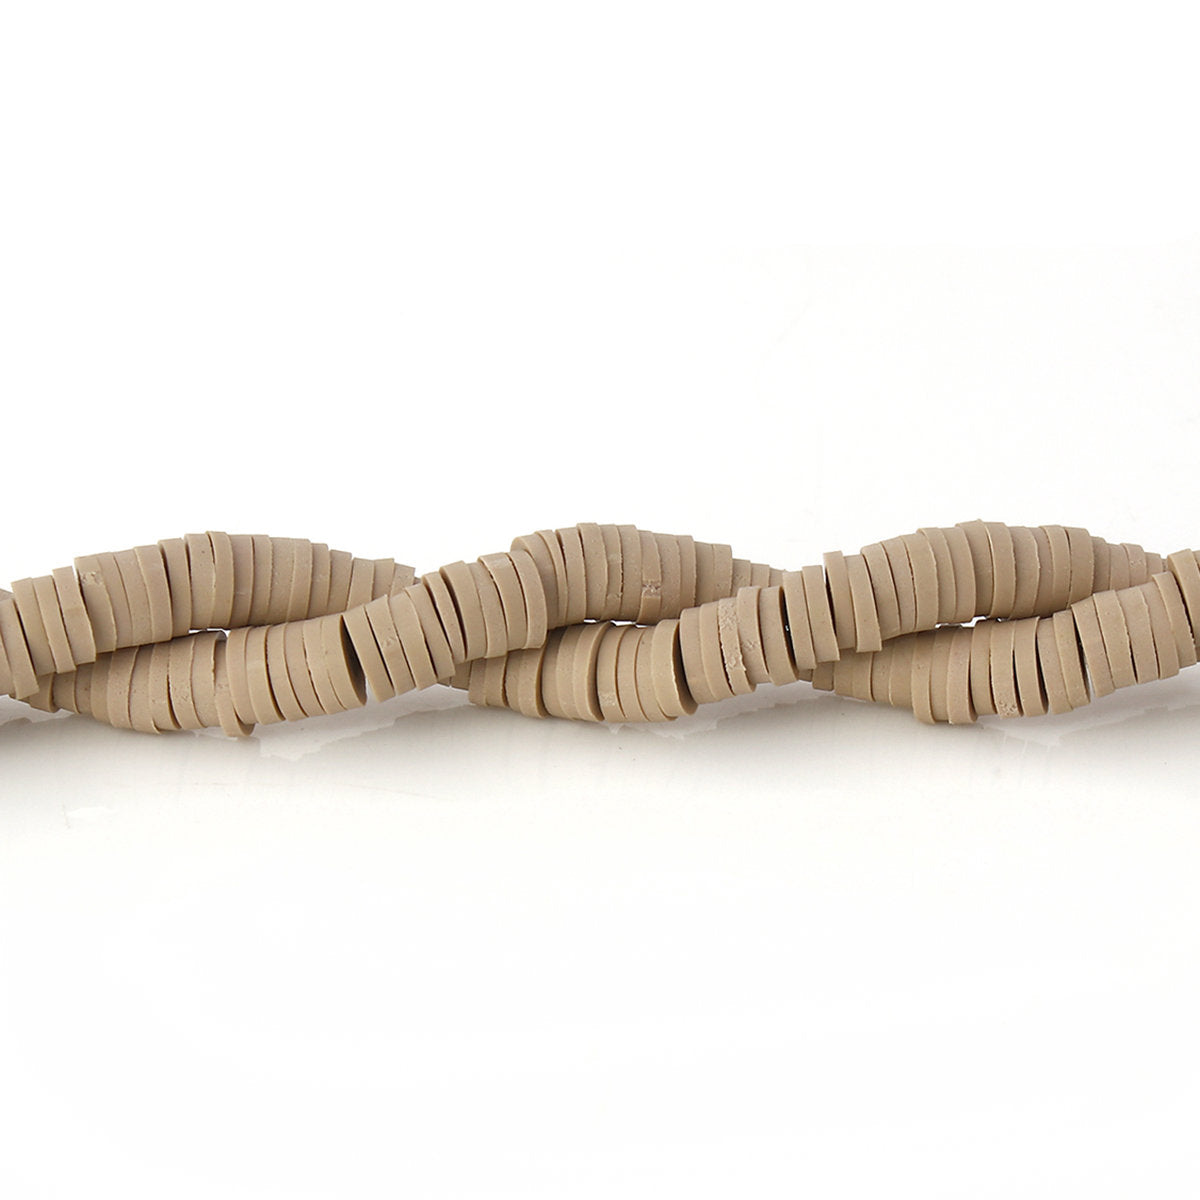 Light Brown Khaki Heishi Beads (One Strand 300 Beads) - 5mm - Polymer Clay Bead - Vinyl Disc Beads - Fimo Bead - African Beads (142)